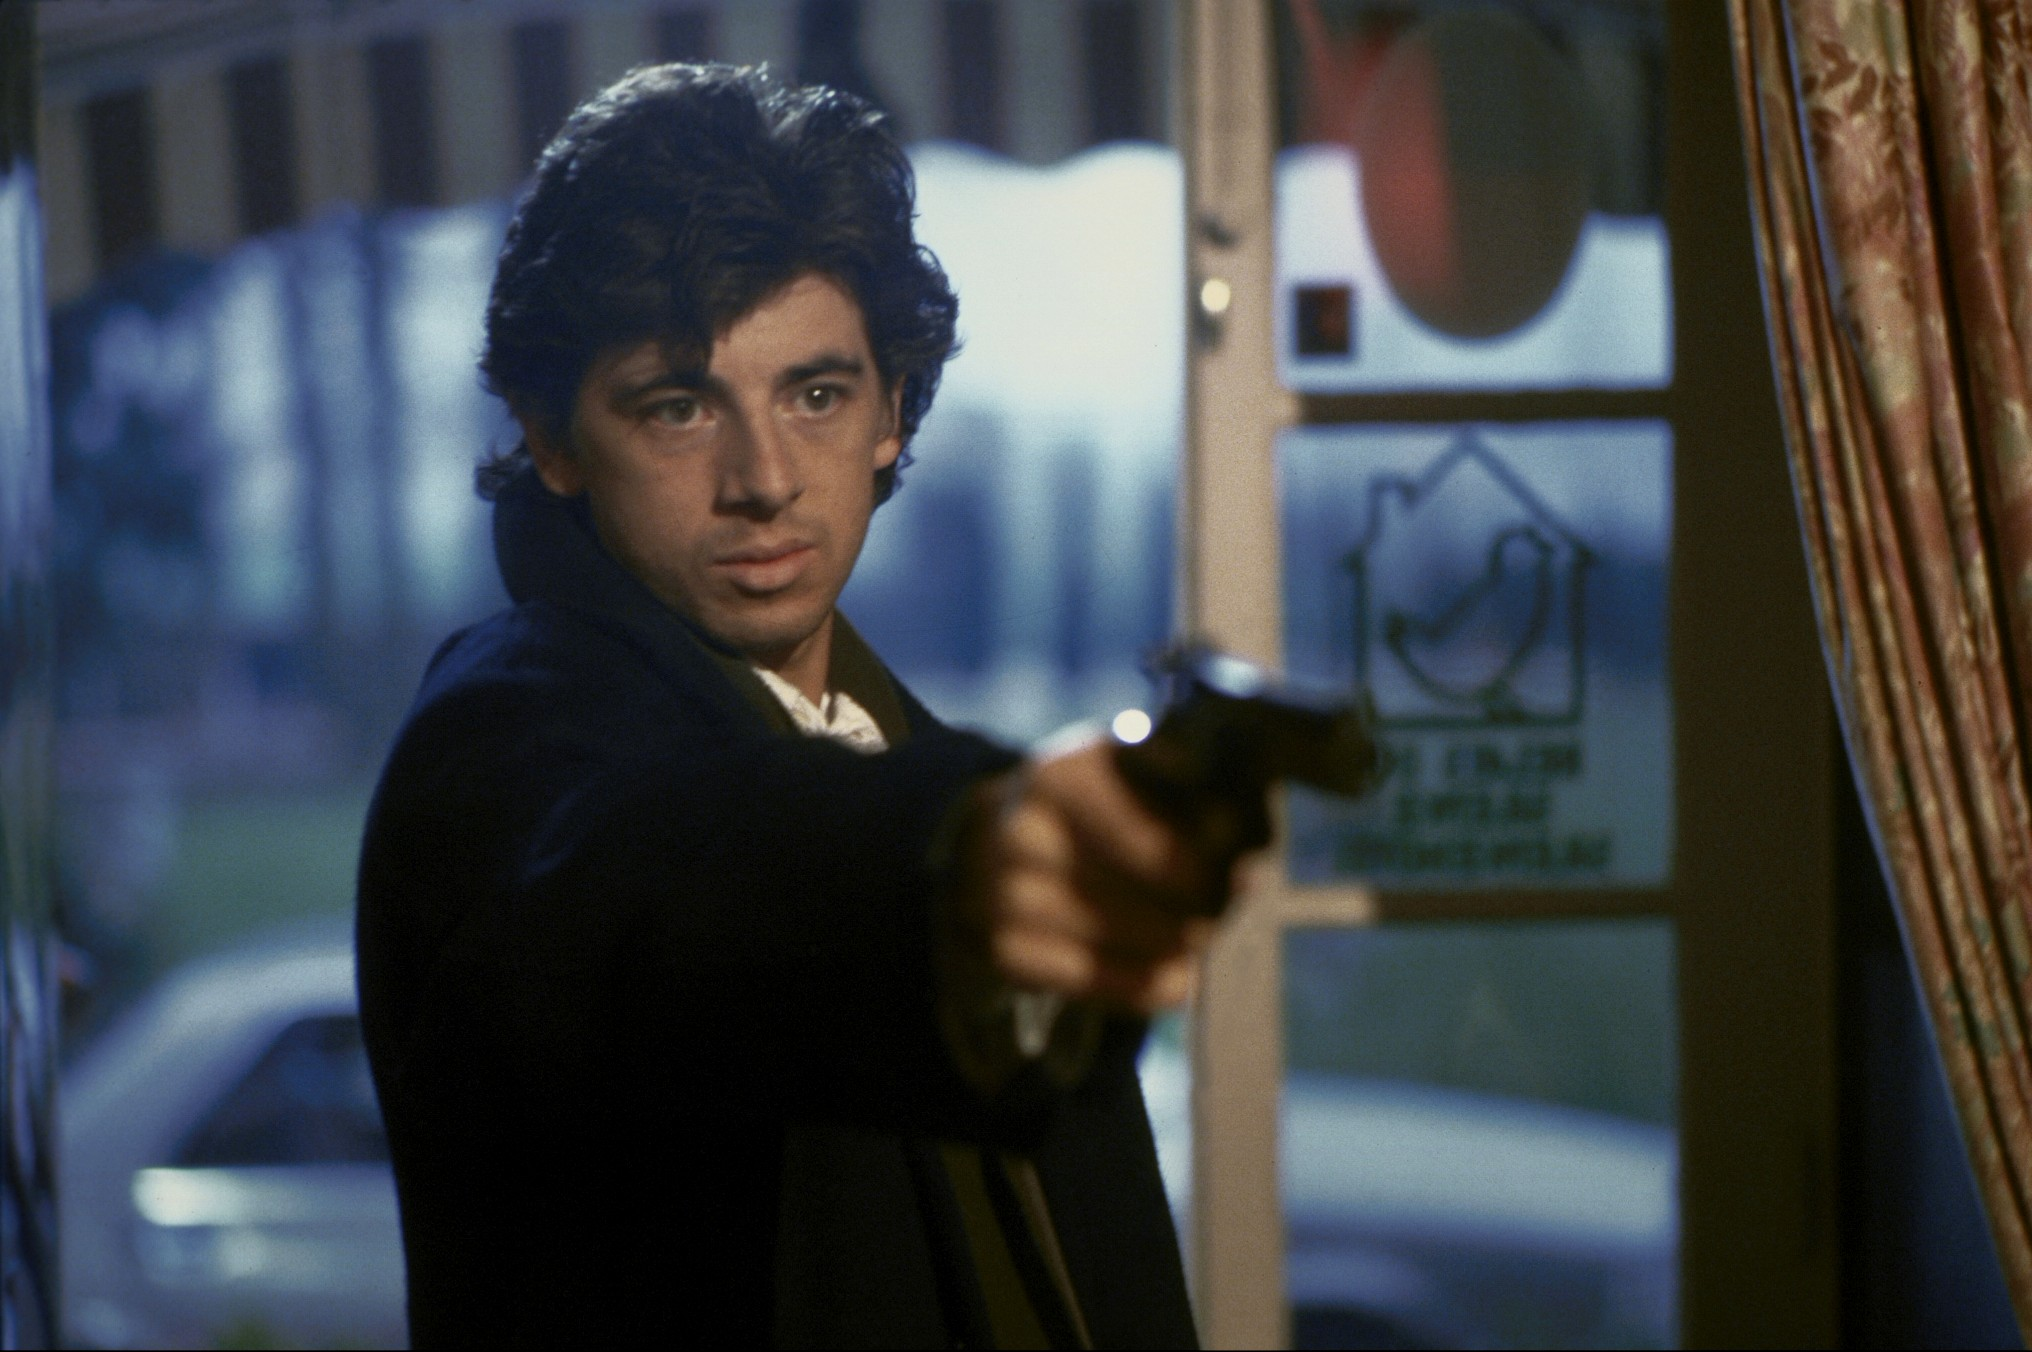 Patrick Bruel in Attention bandits! (1986)